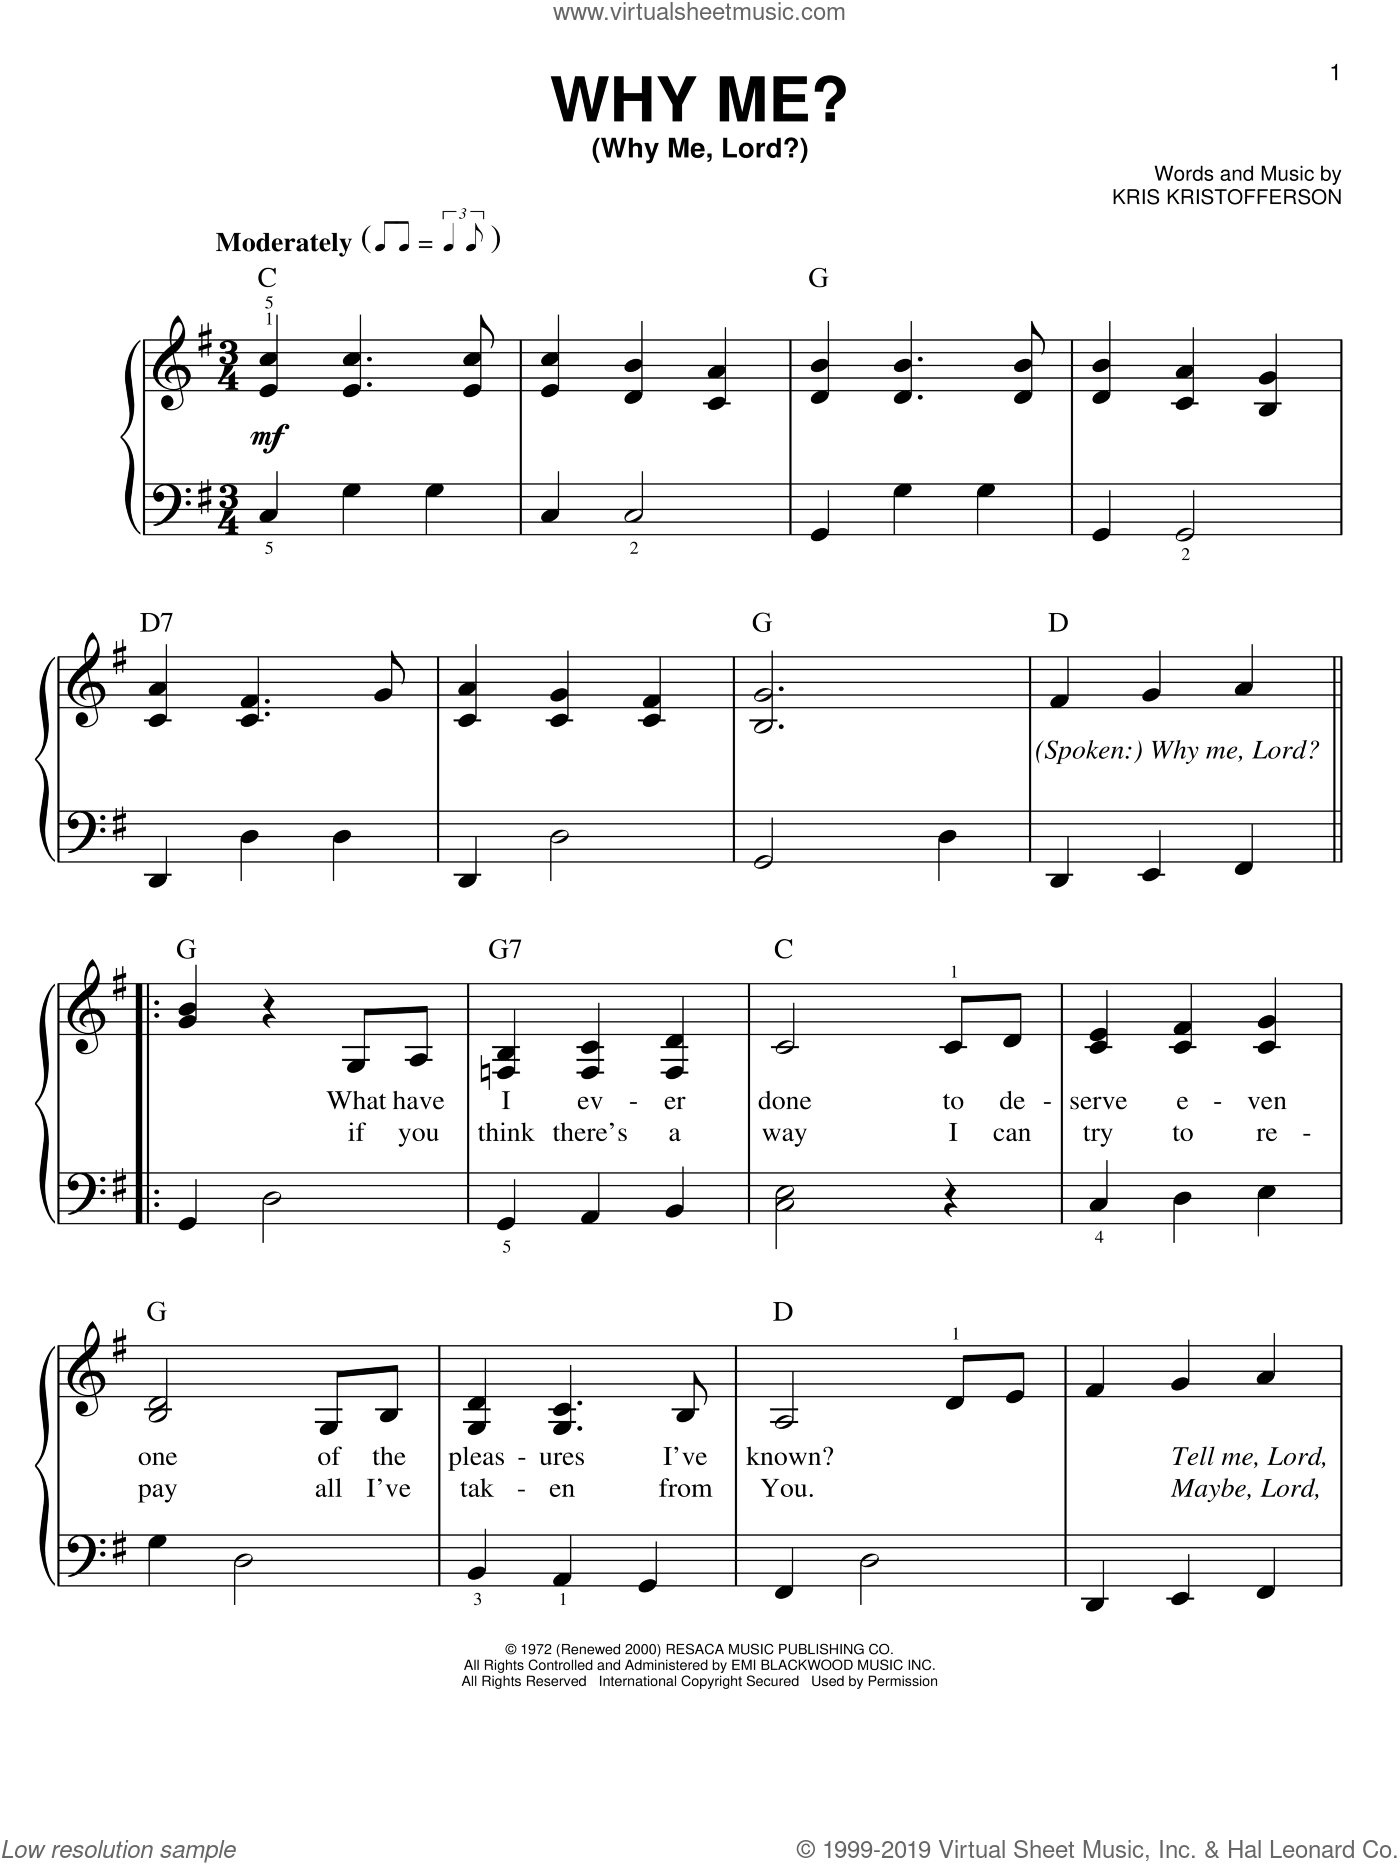 Why Me? (Why Me, Lord?) sheet music for piano solo by Kris Kristofferson and Cristy Lane, easy skill level